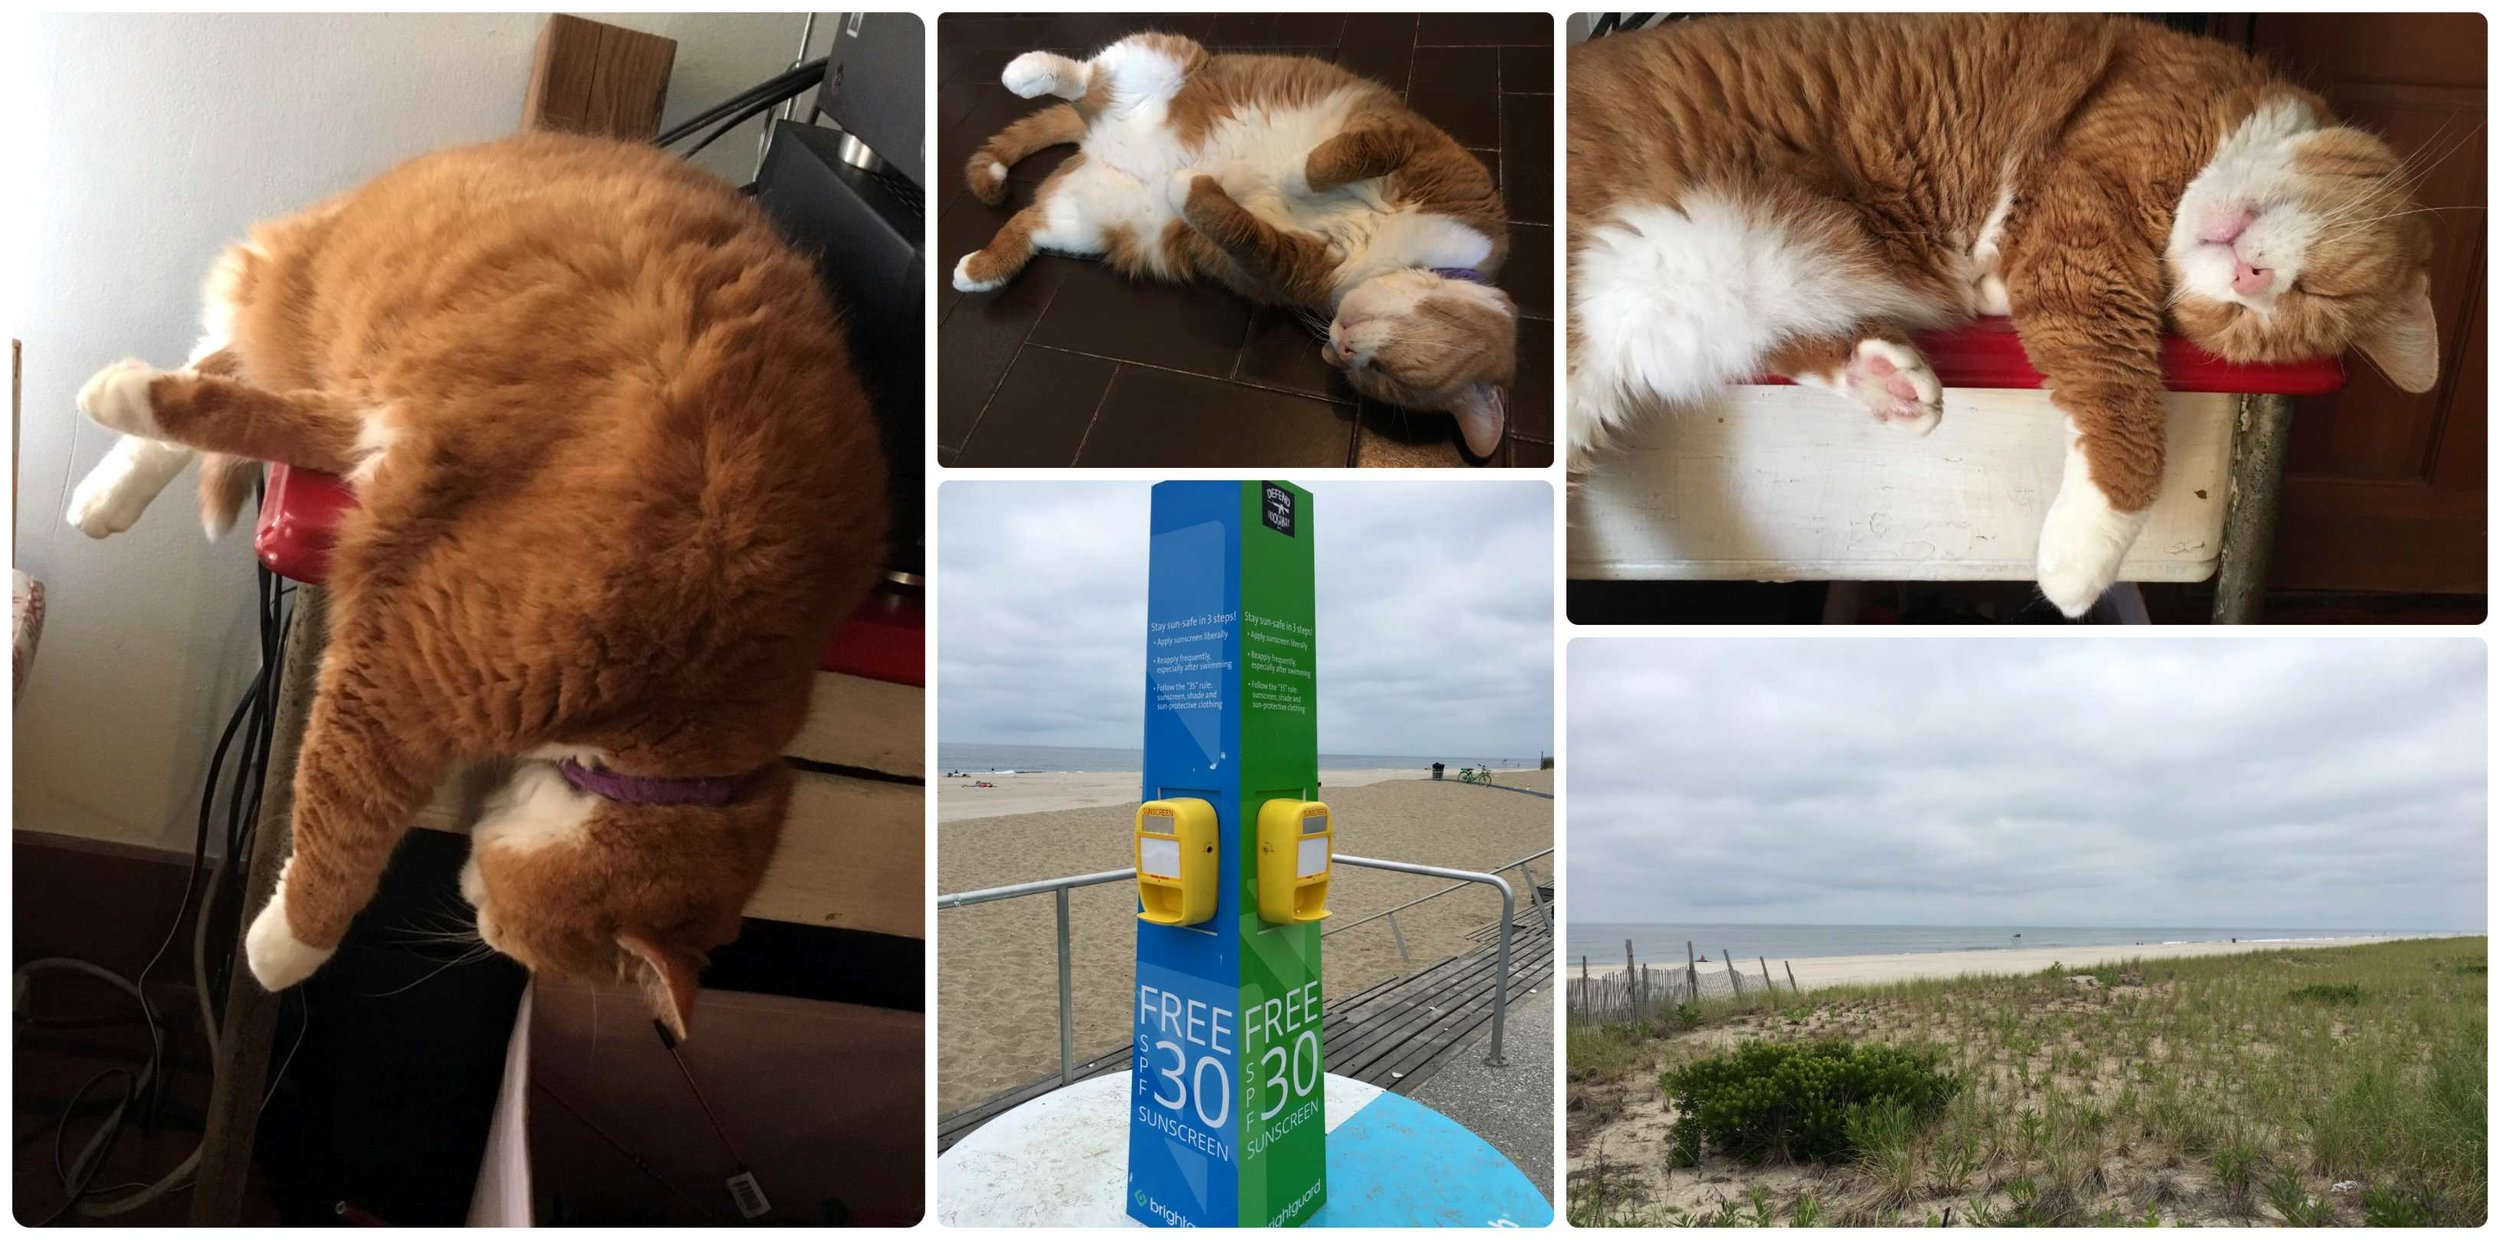 House sitting in Rockaway Beach, Queens, New York! Stinky is doing what he does best… sleeping! Not every day was overcast at the beach, so free sunscreen stations can be found on the boardwalk!